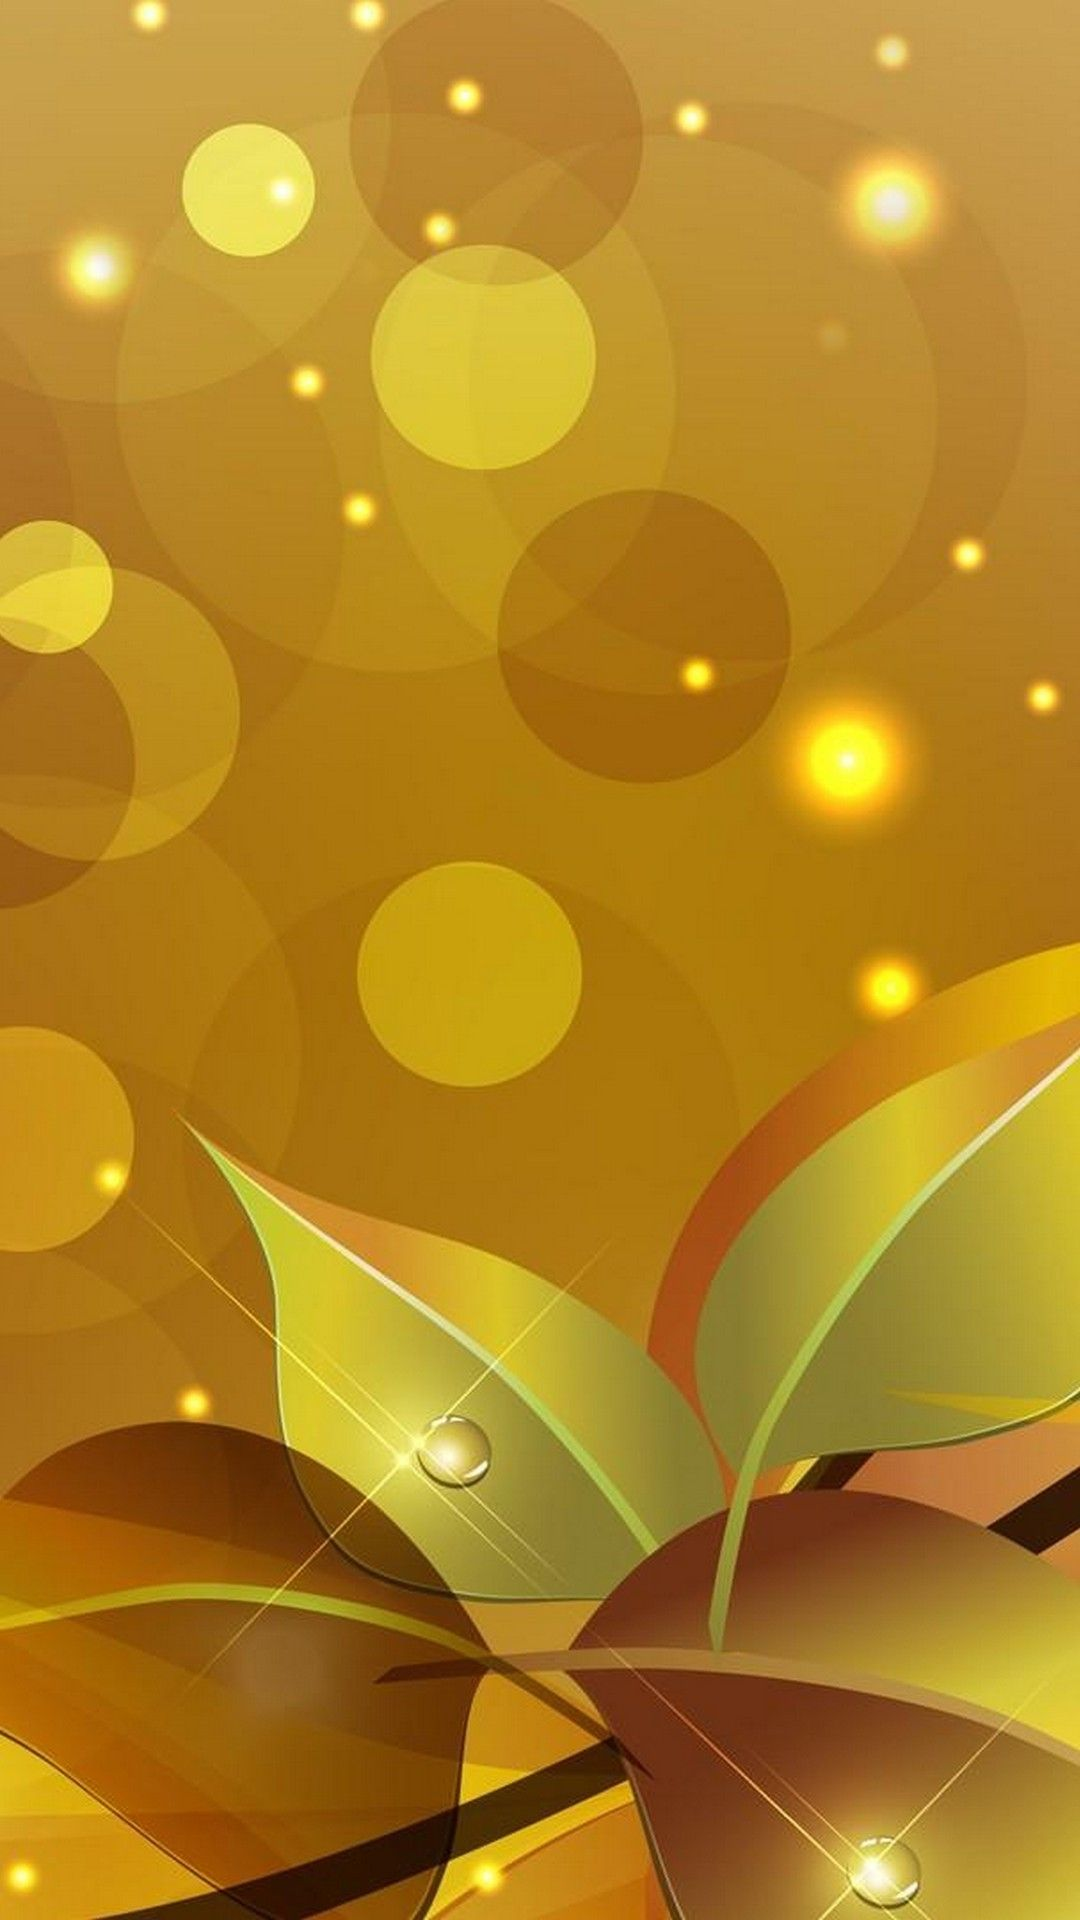 PhoneWallpaper Gold Wallpaper Android Seni